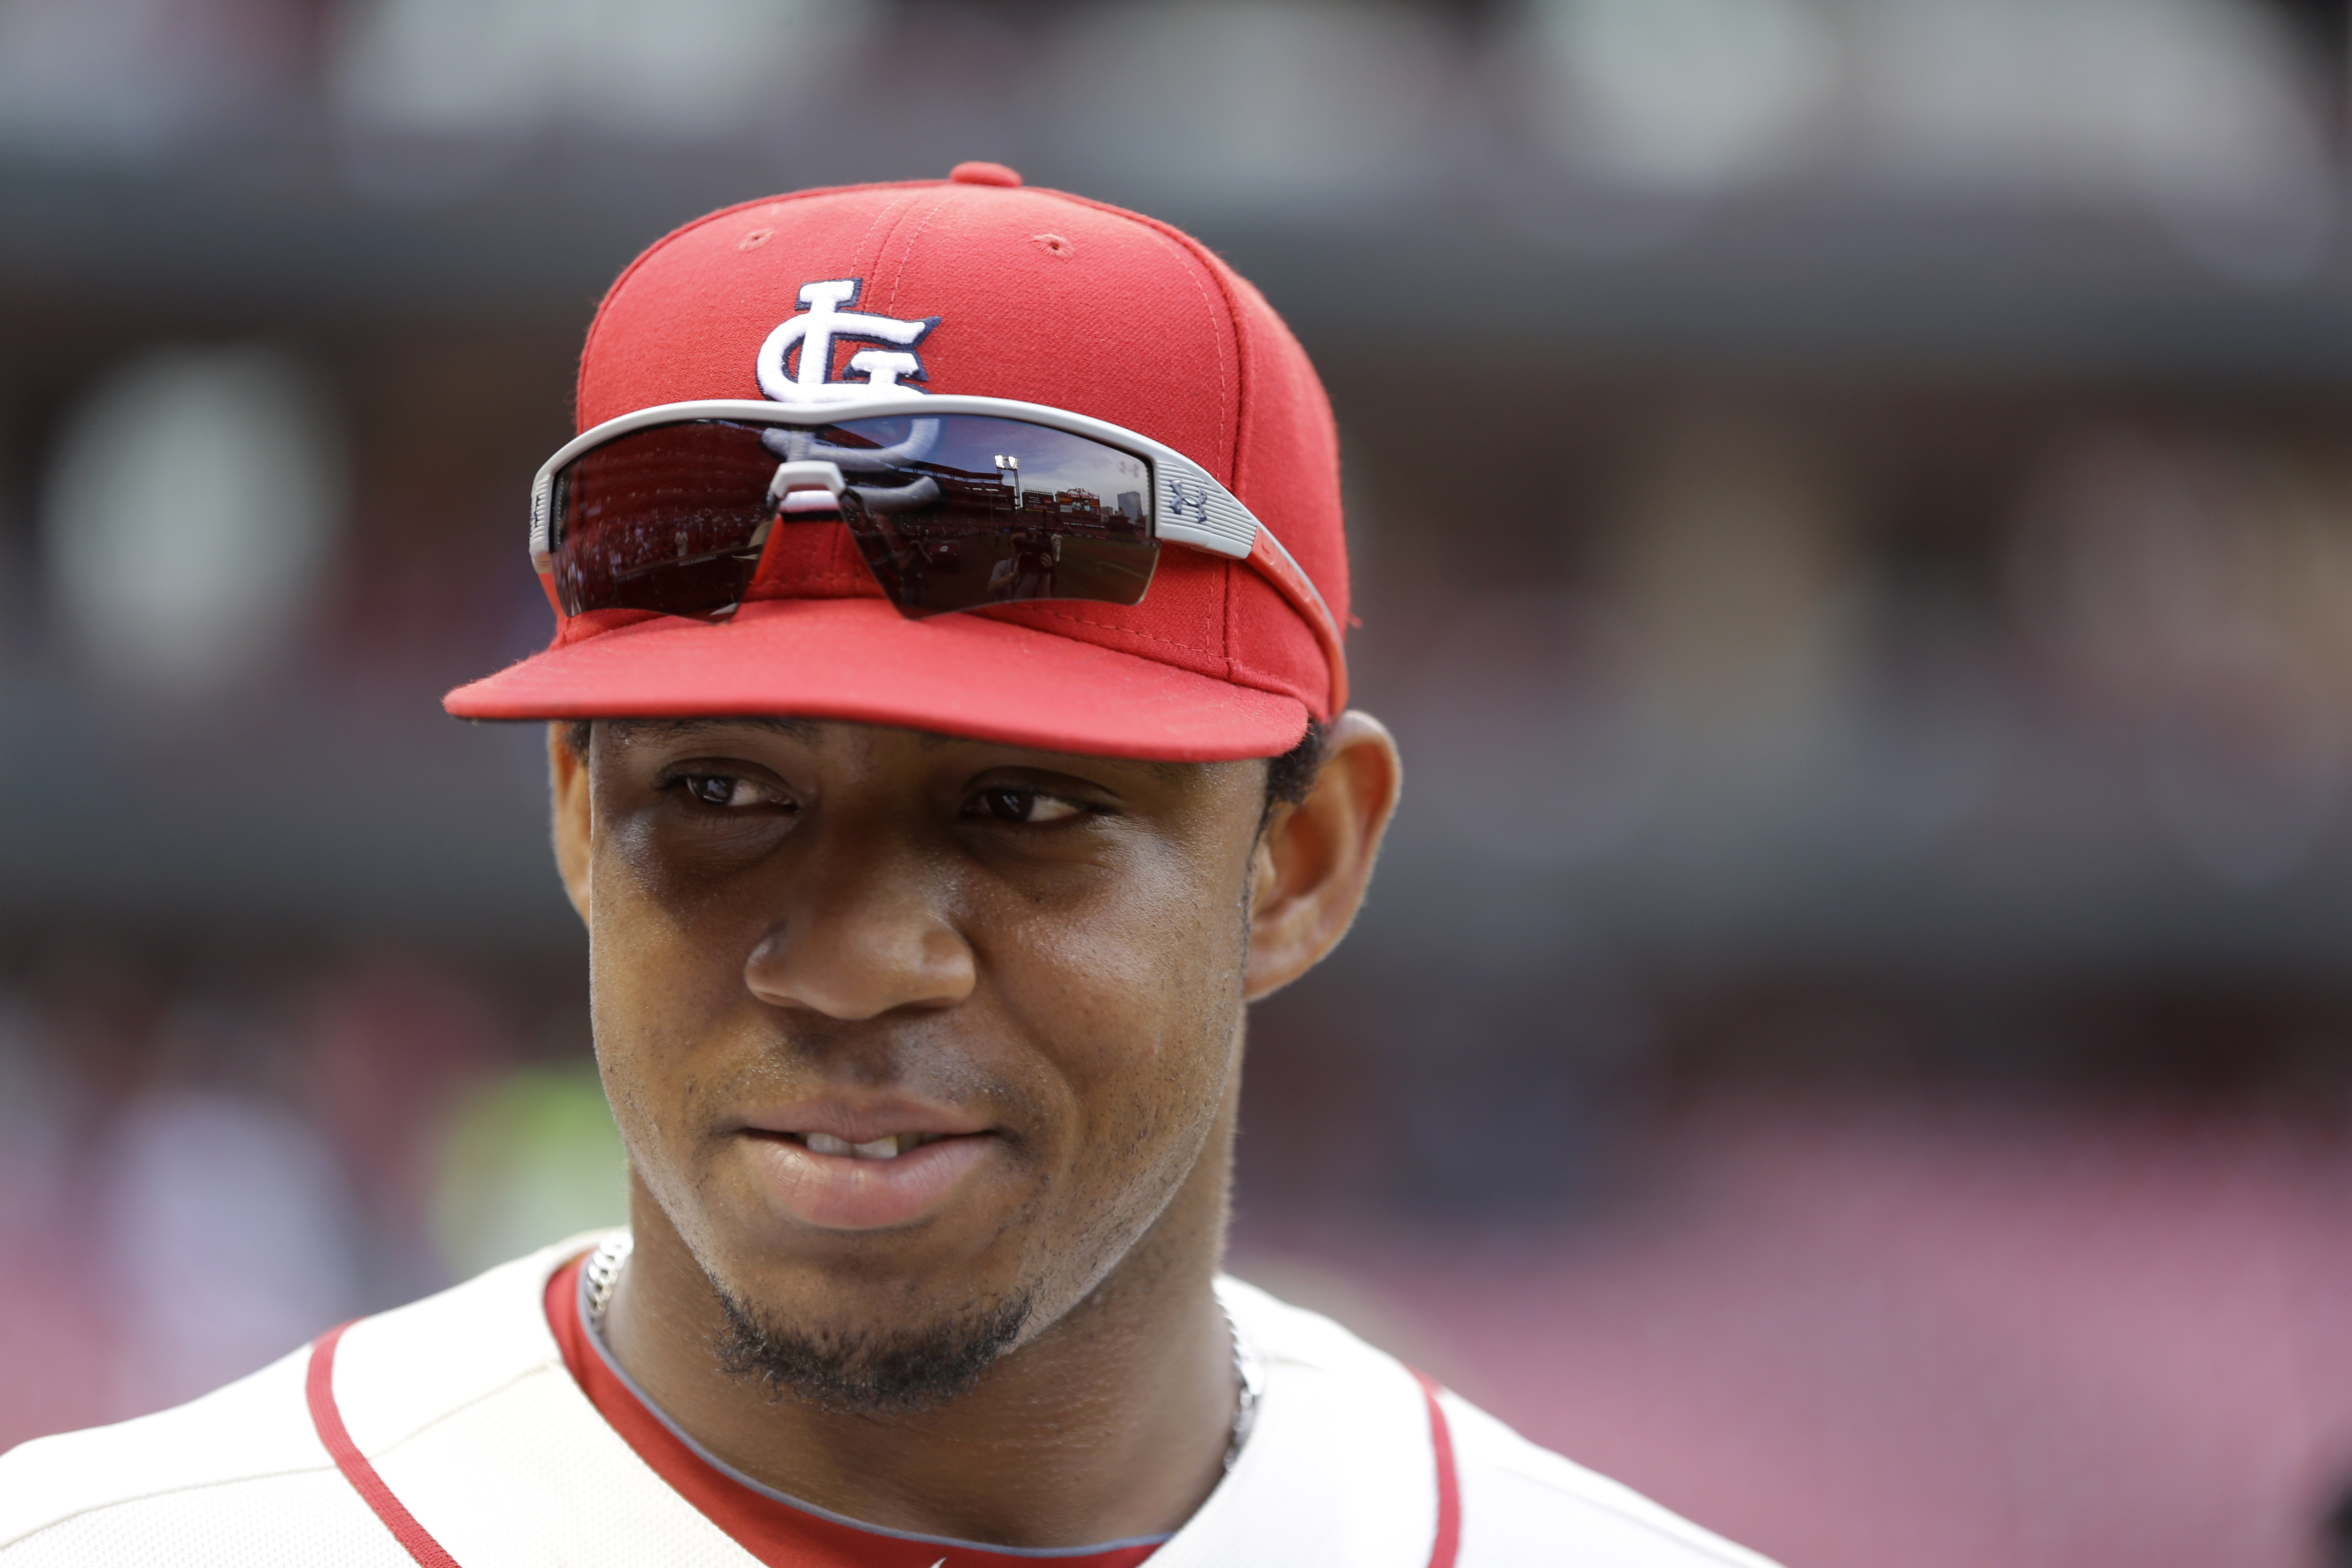 Oscar Taveras' family uses his Twitter to share fan tributes